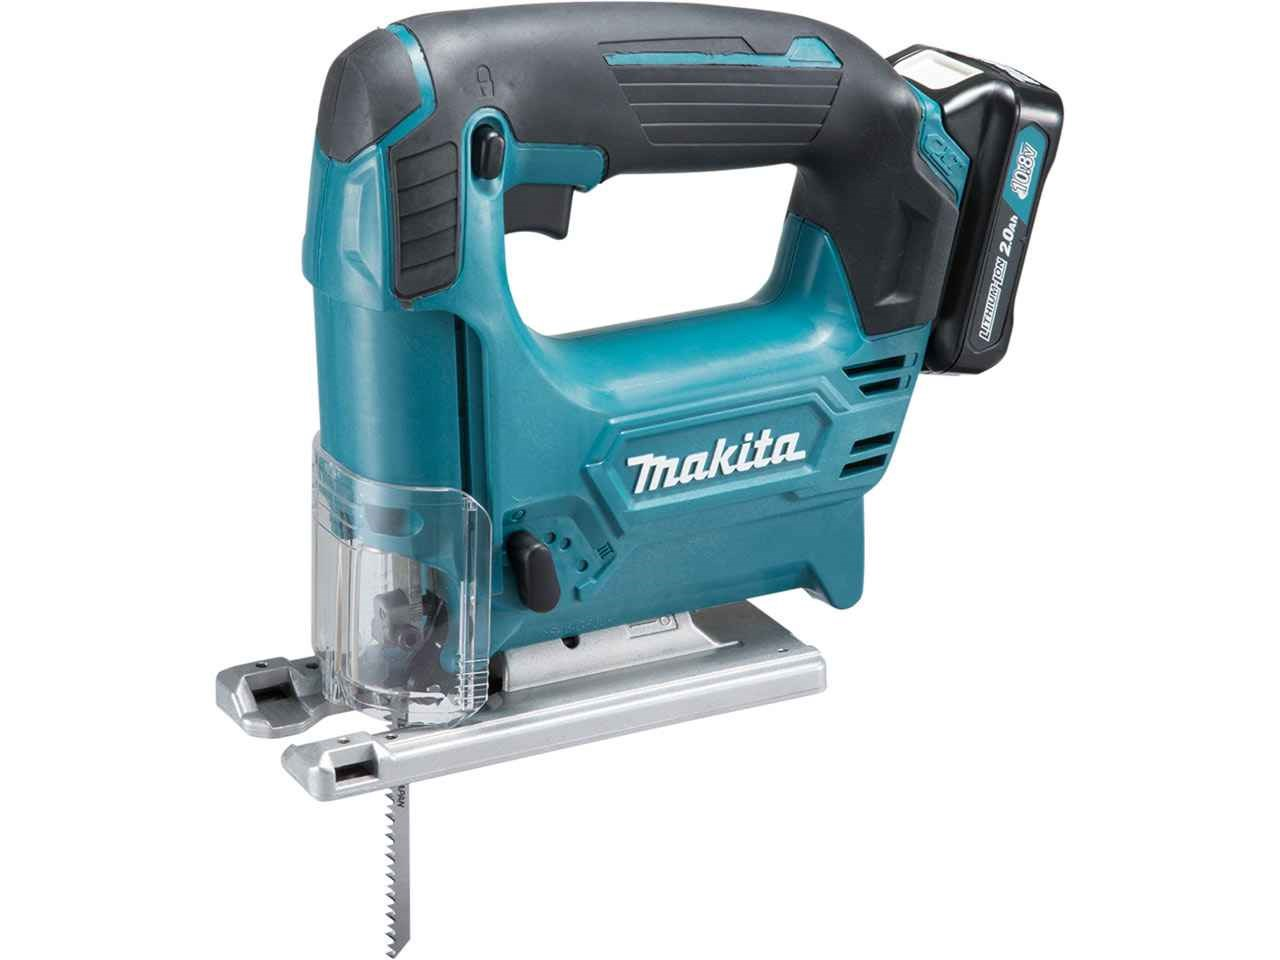 Makita jv101dwae 108v cxt 2x20ah li ion jigsaw kit greentooth Images